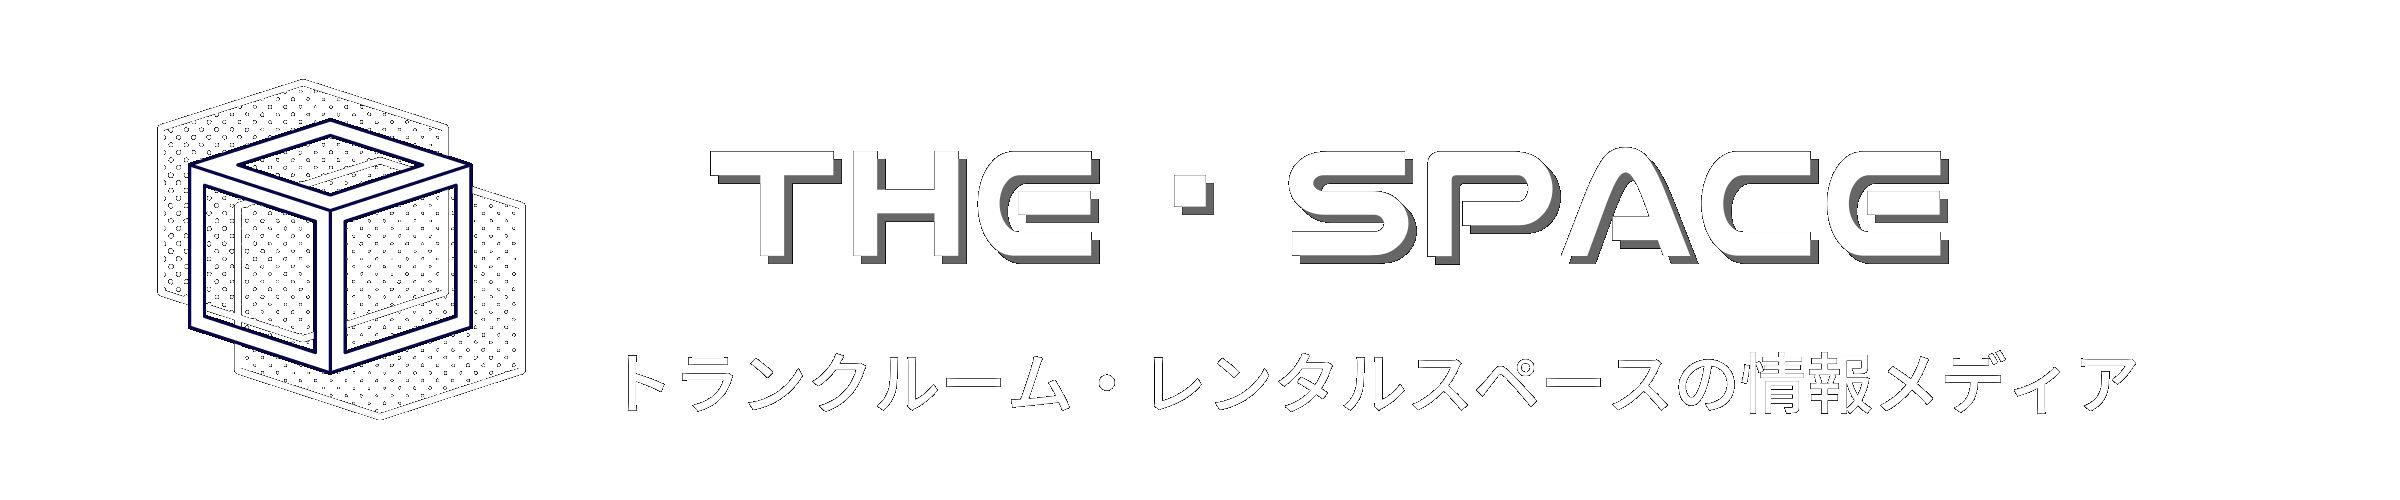 THE・SPACE